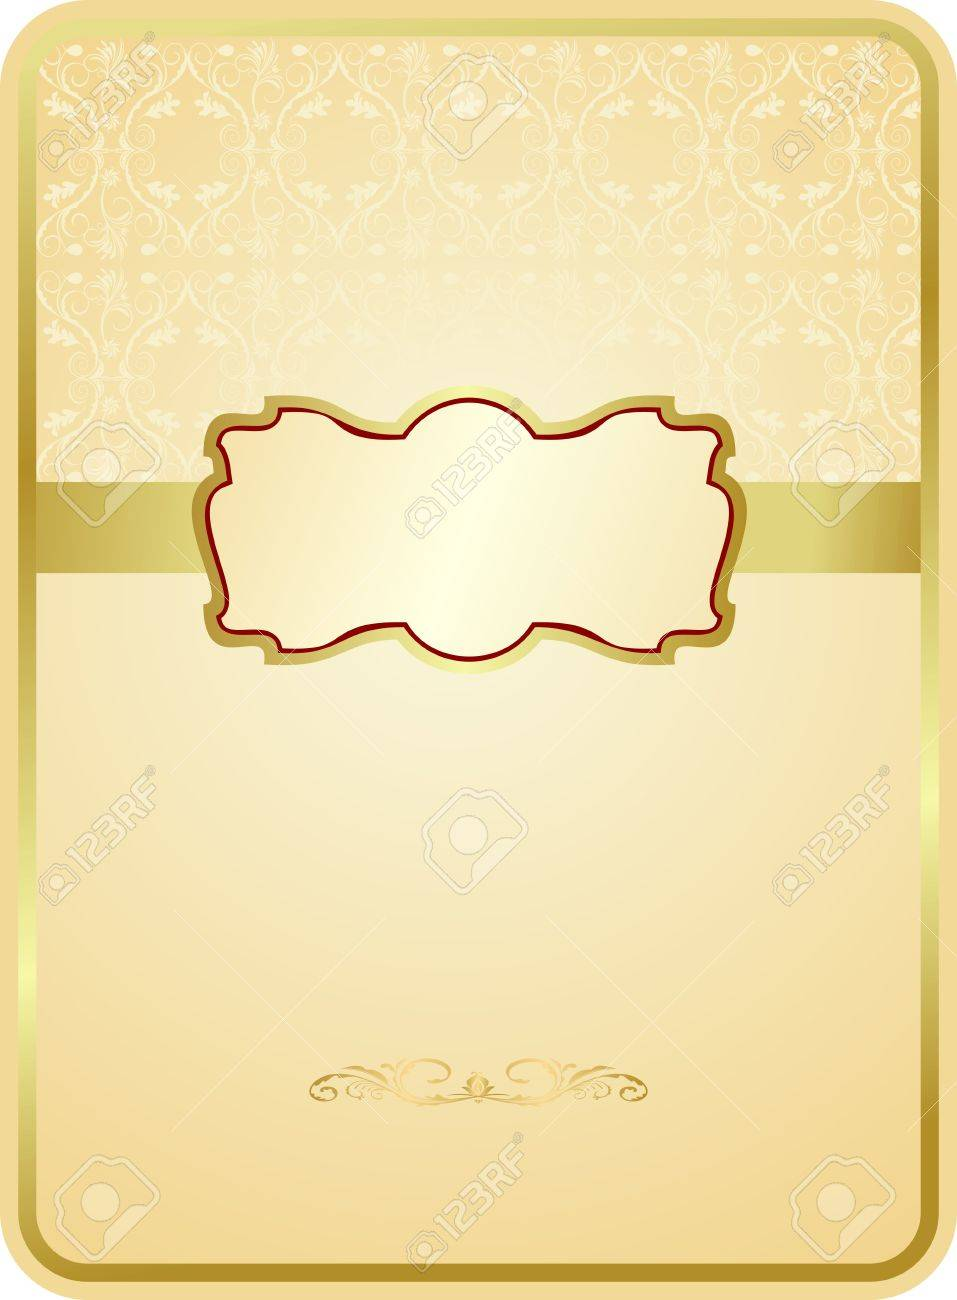 Wedding card with gold emblem Stock Vector - 7589850